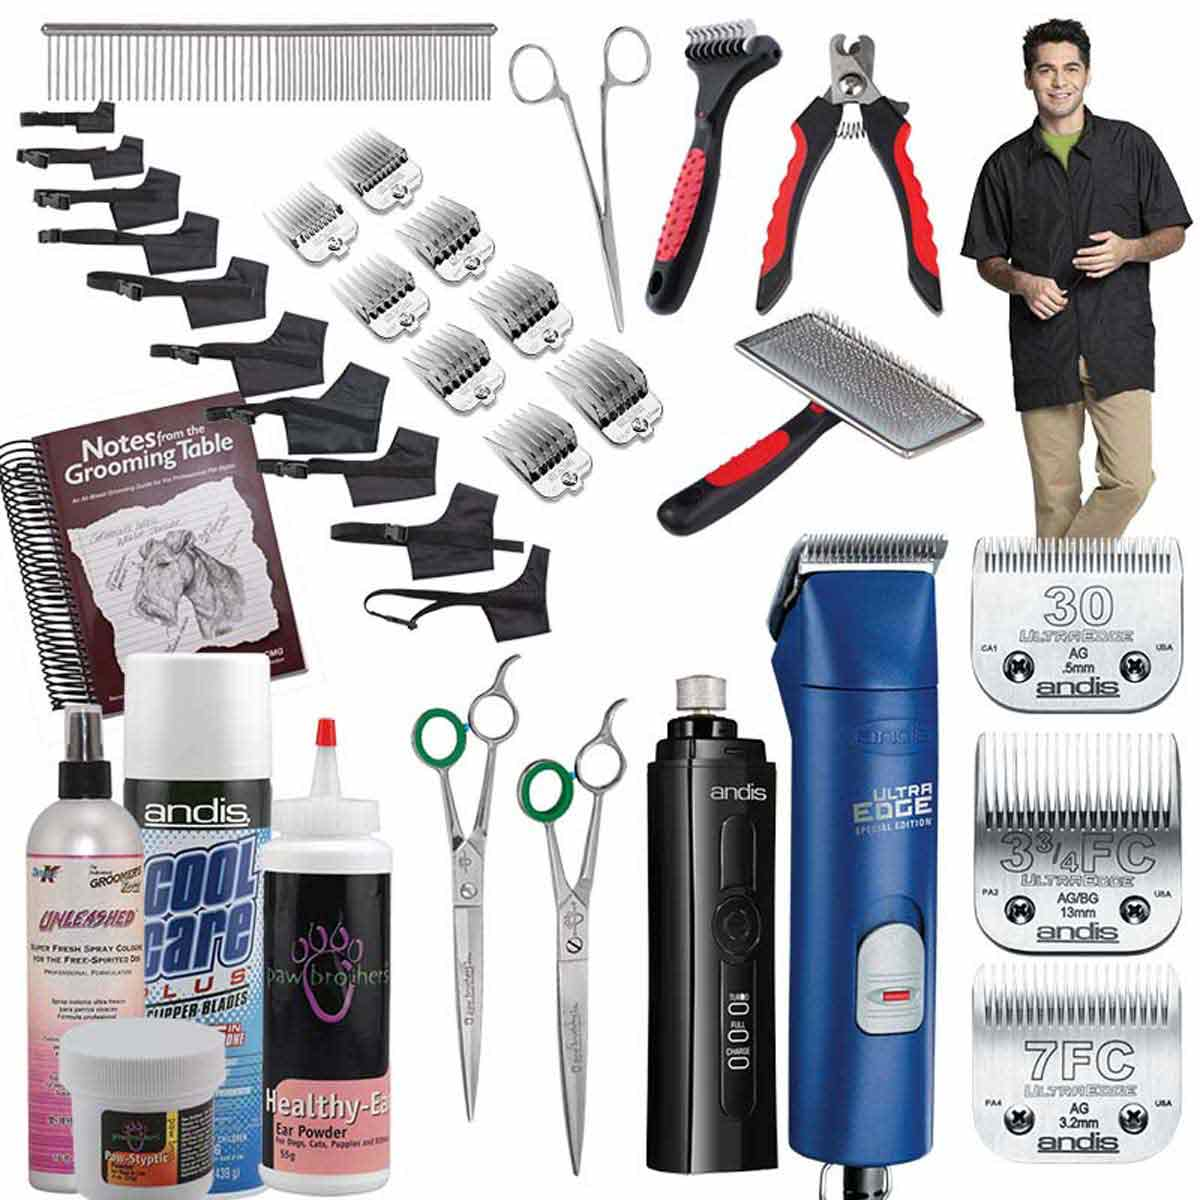 Andis Super 2 Speed Student Kit for Grooming